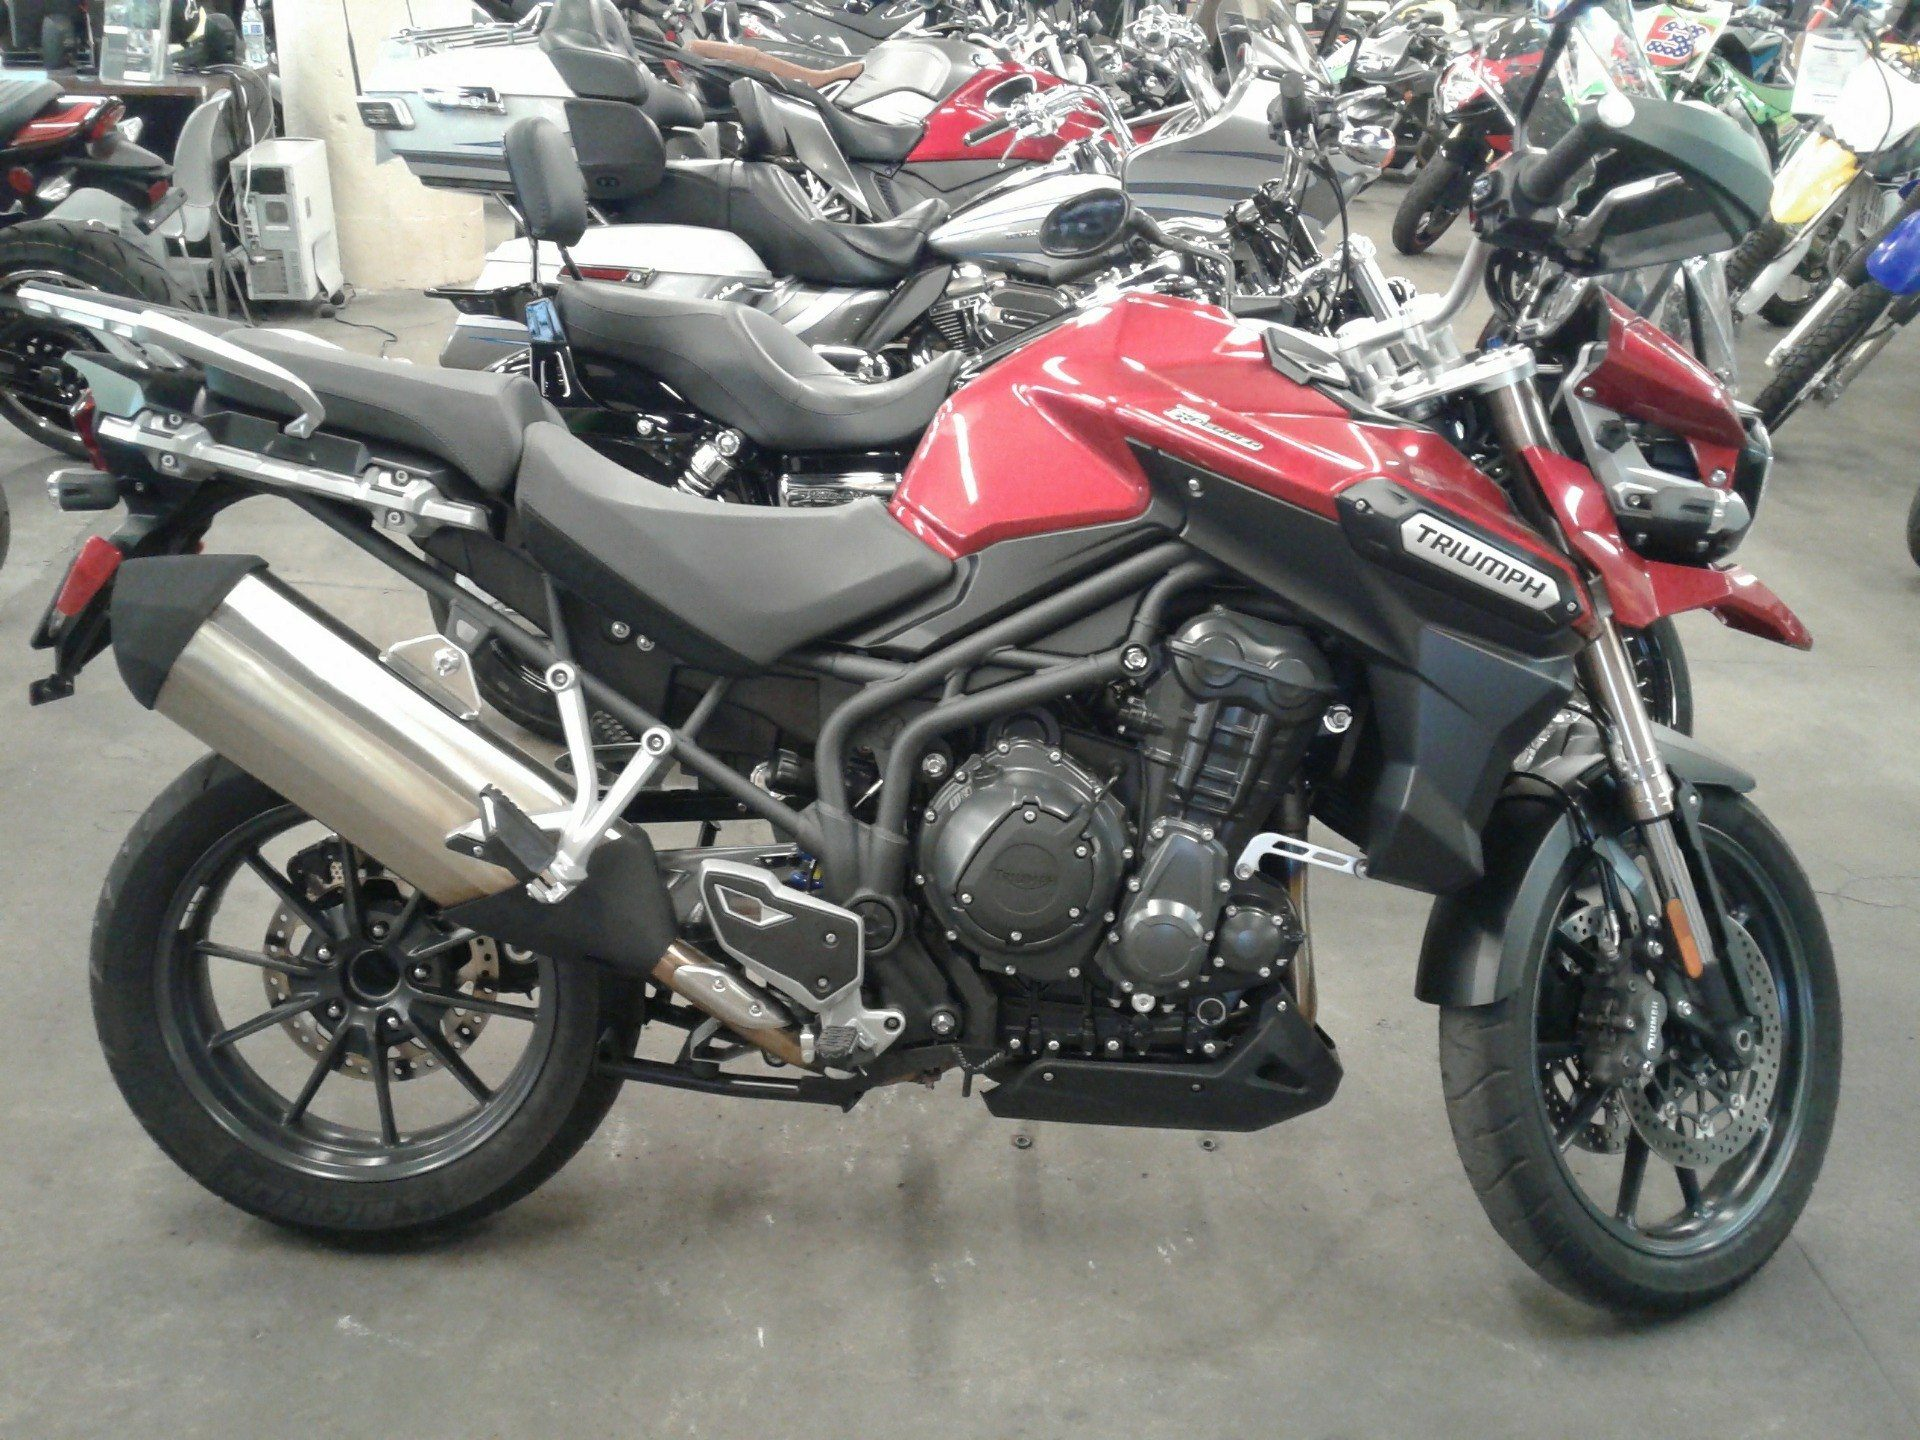 New 2015 Triumph Tiger Explorer Abs Motorcycles In Bakersfield Ca